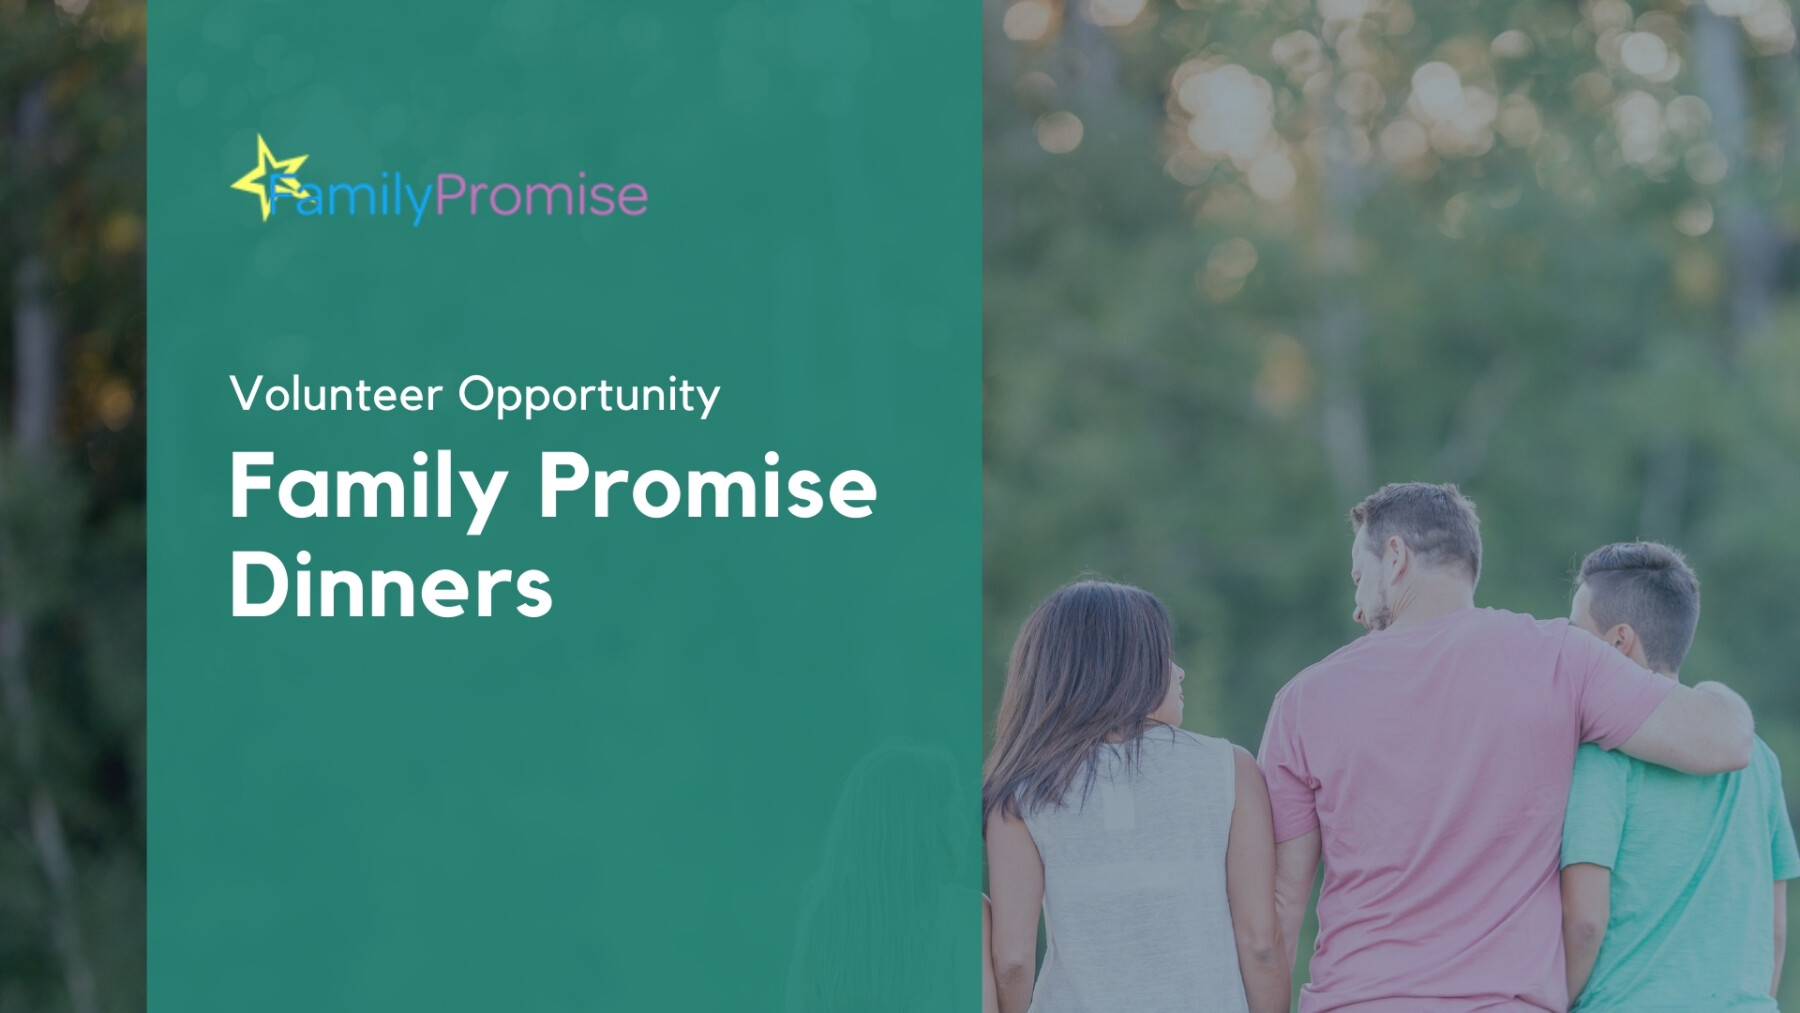 Family Promise Dinners